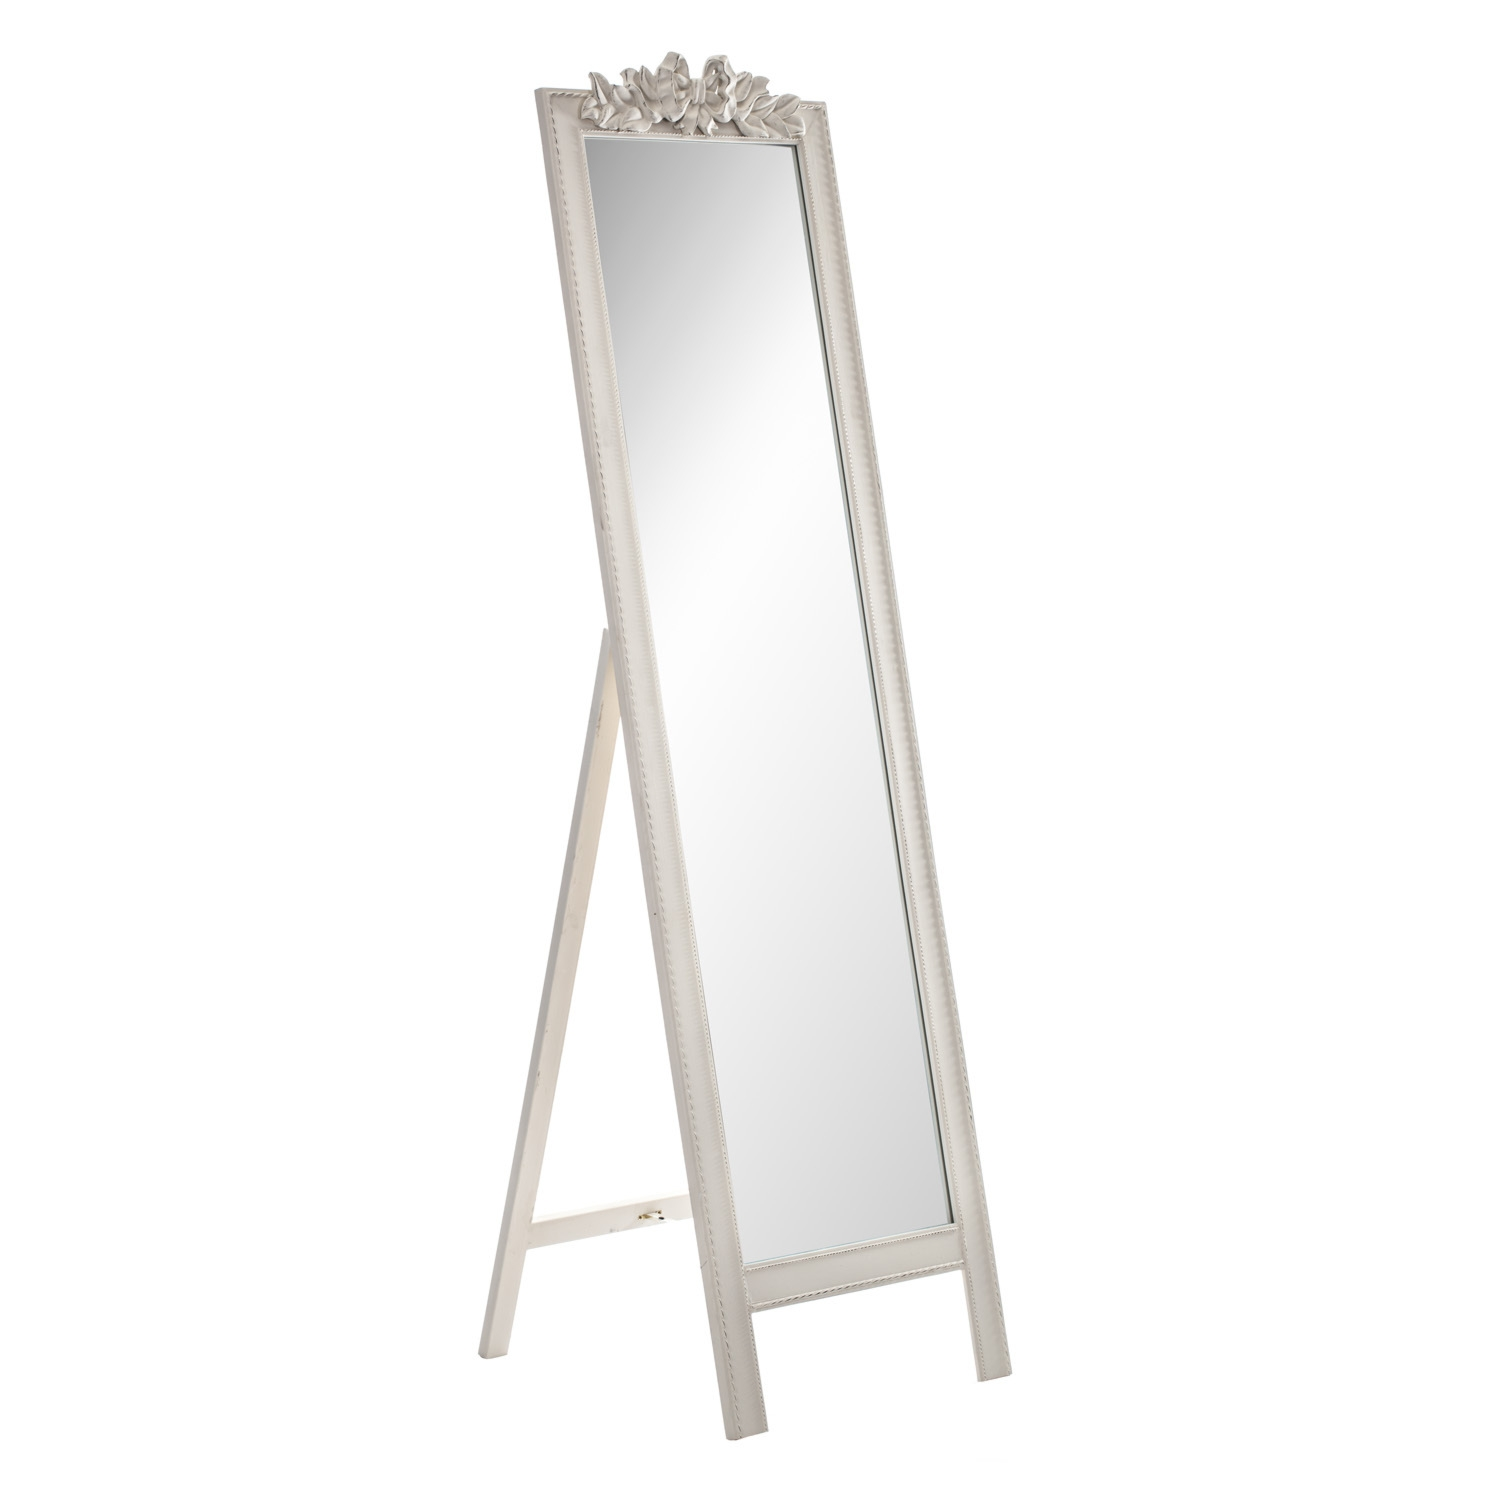 Full Length Floor Mirrors Large Free Standing Mirrors The Range Inside Free Standing Shabby Chic Mirror (Image 11 of 15)